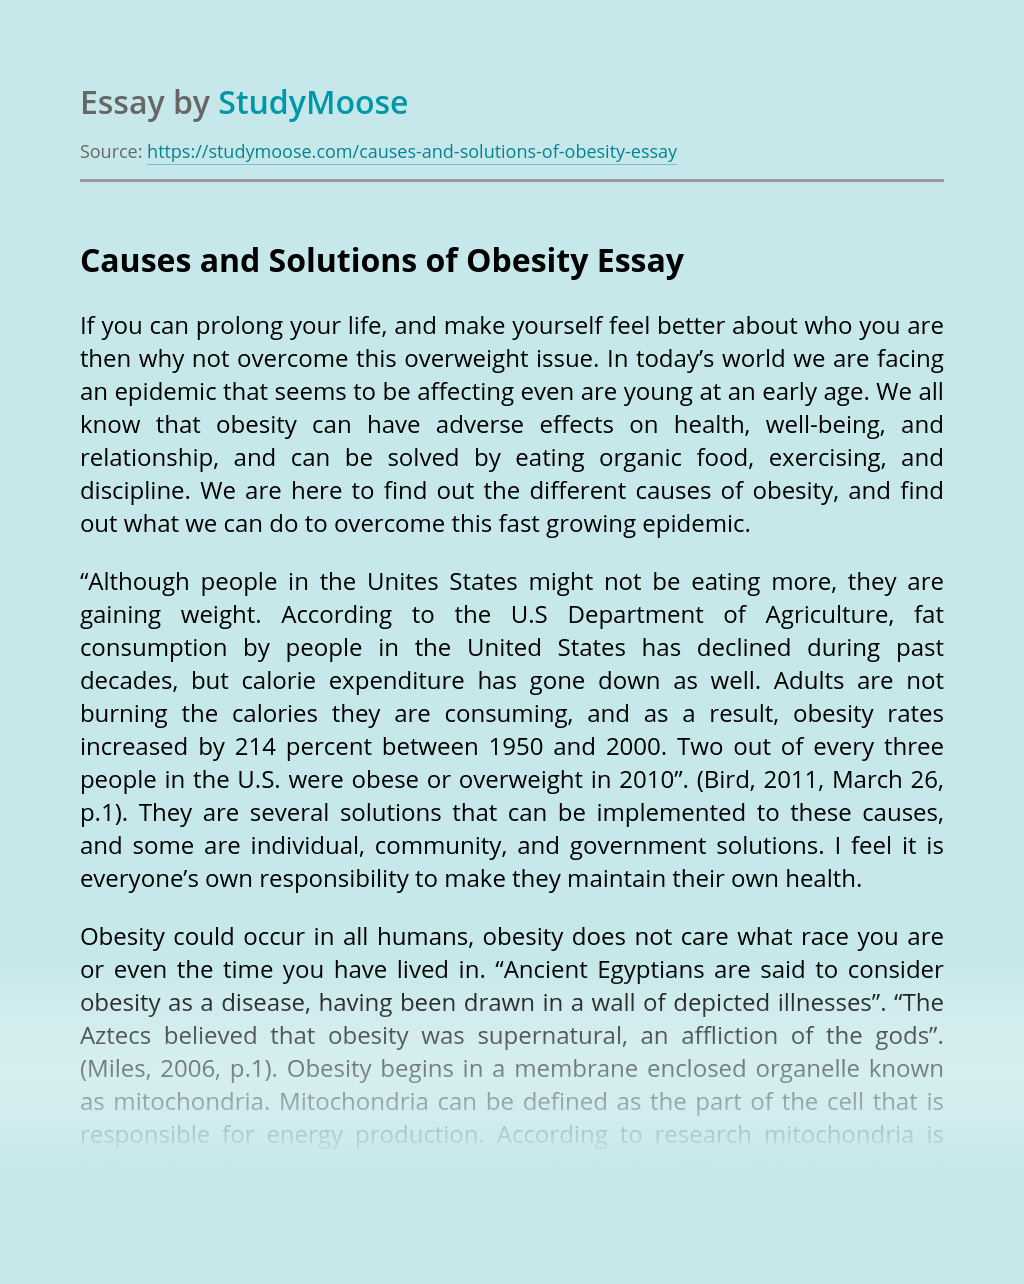 Causes and Solutions of Obesity